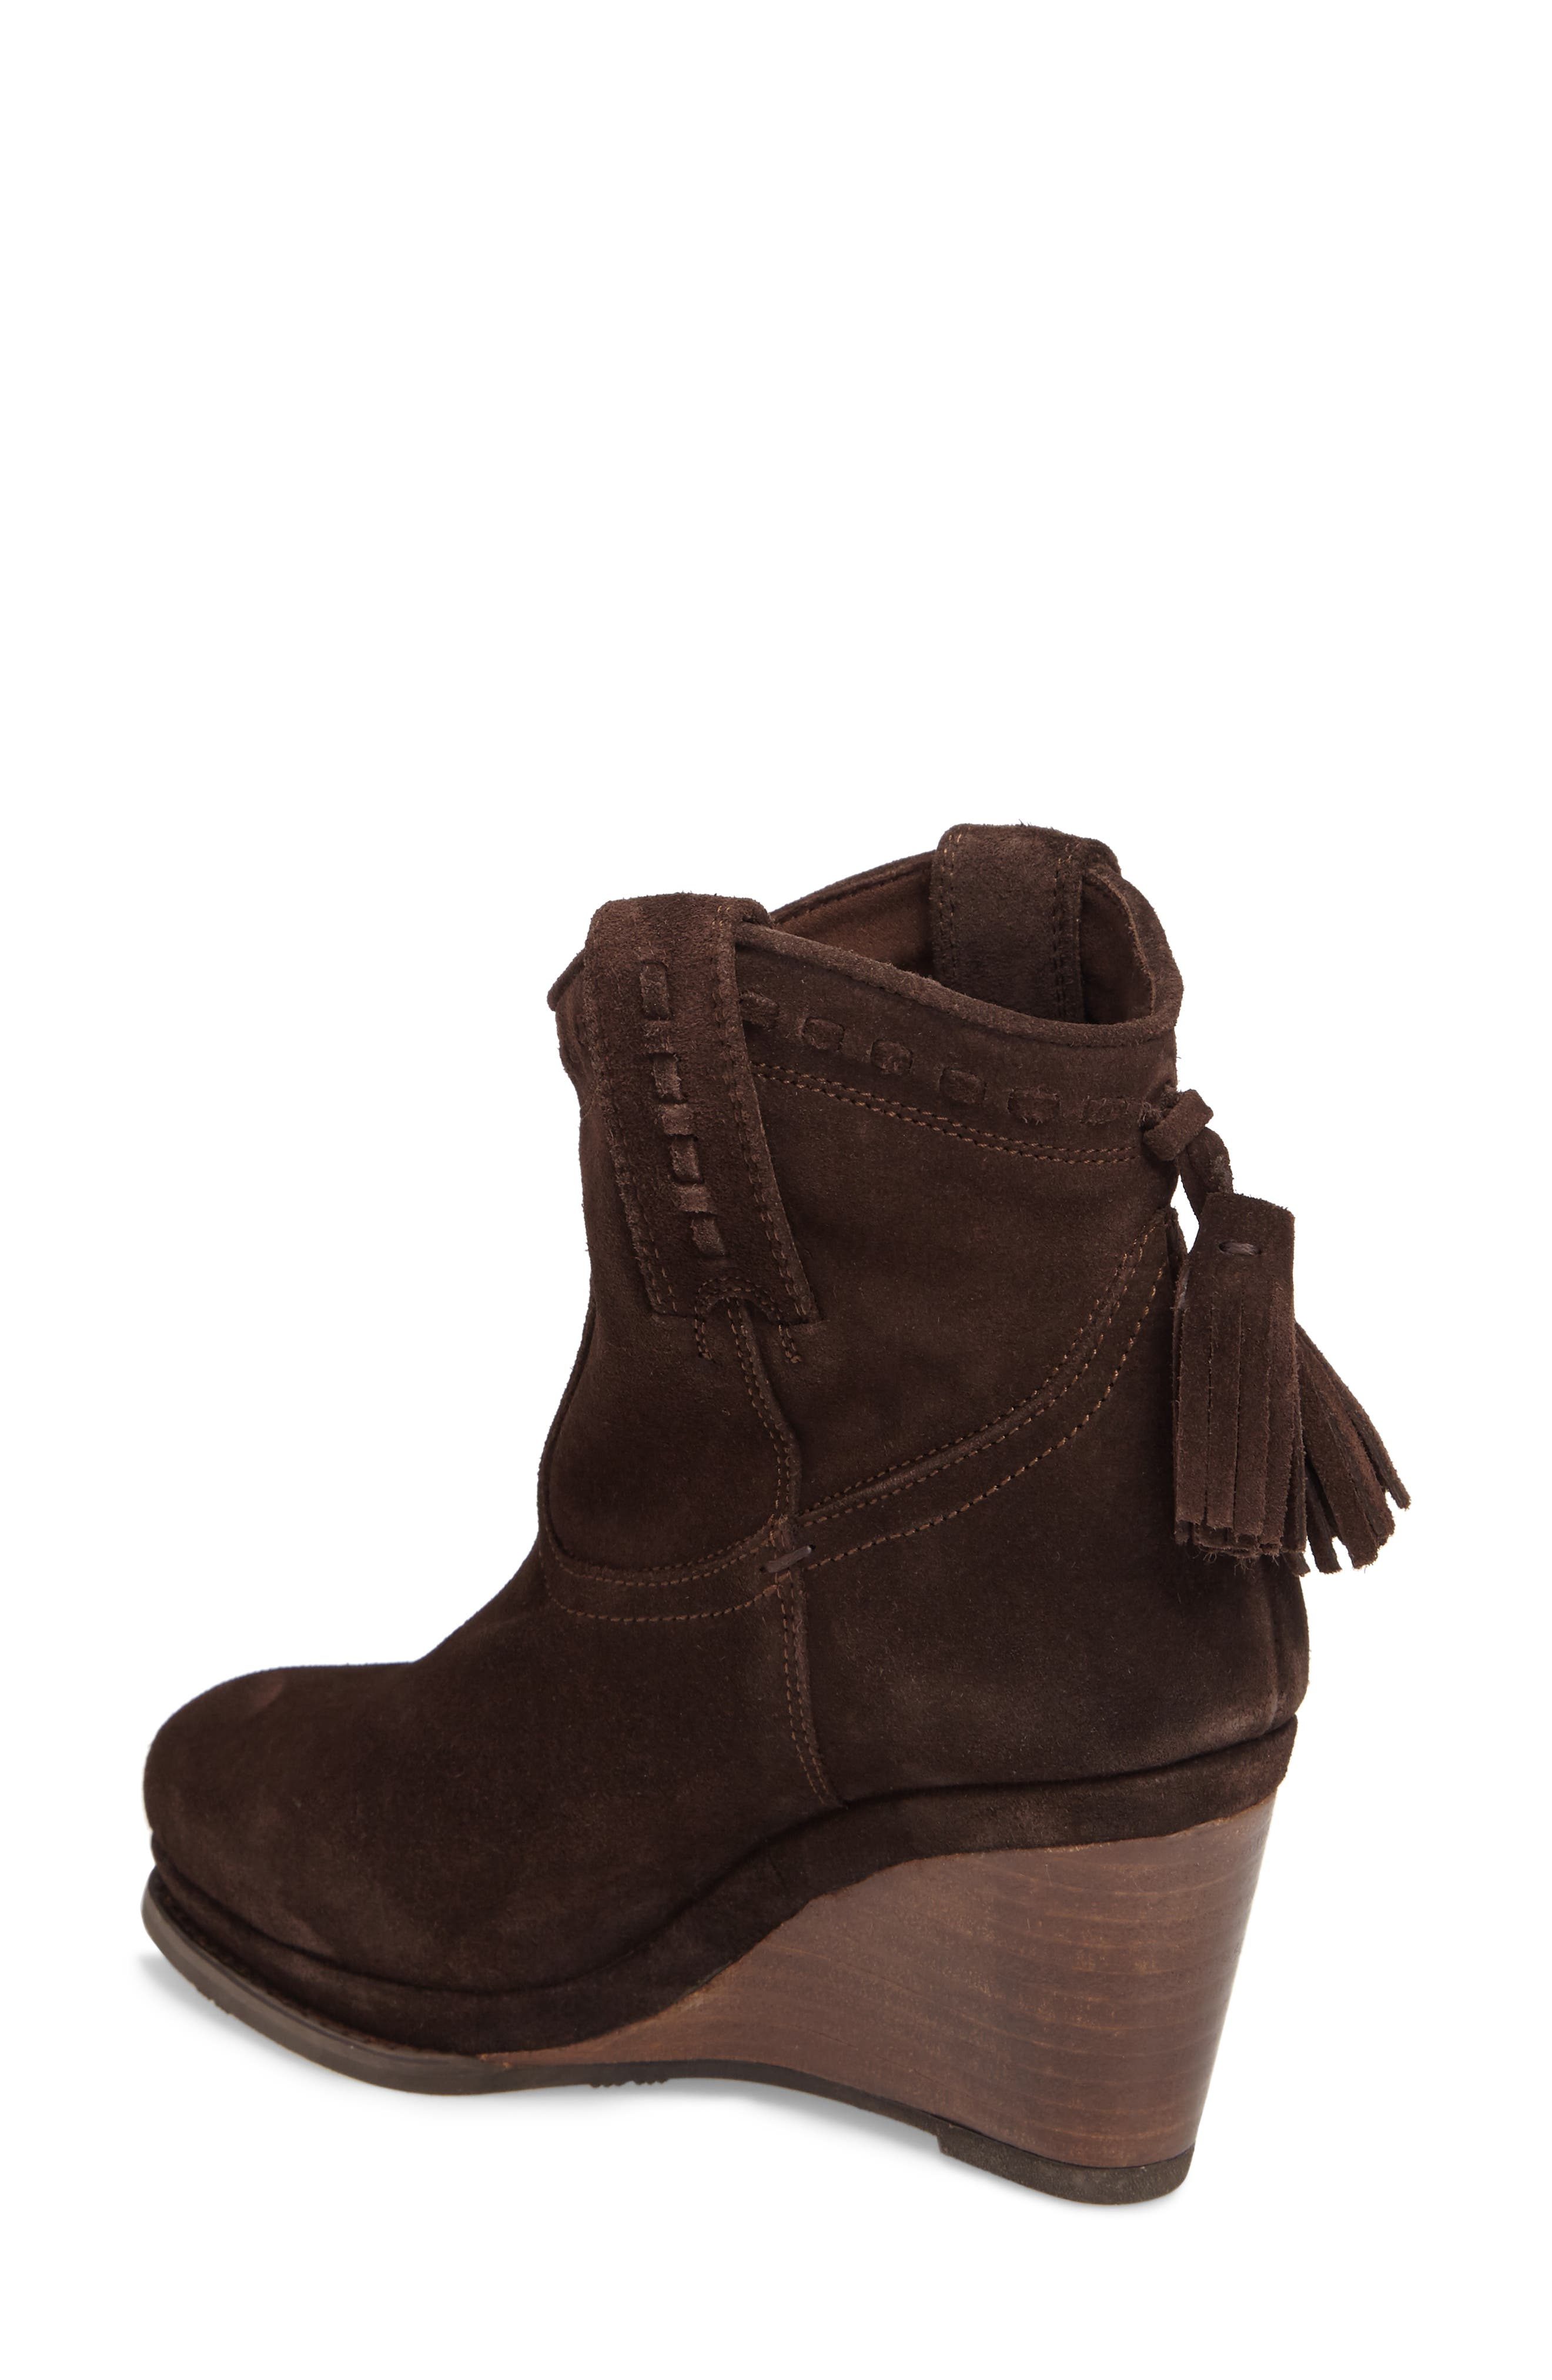 Broadway Western Wedge Boot,                             Alternate thumbnail 2, color,                             200